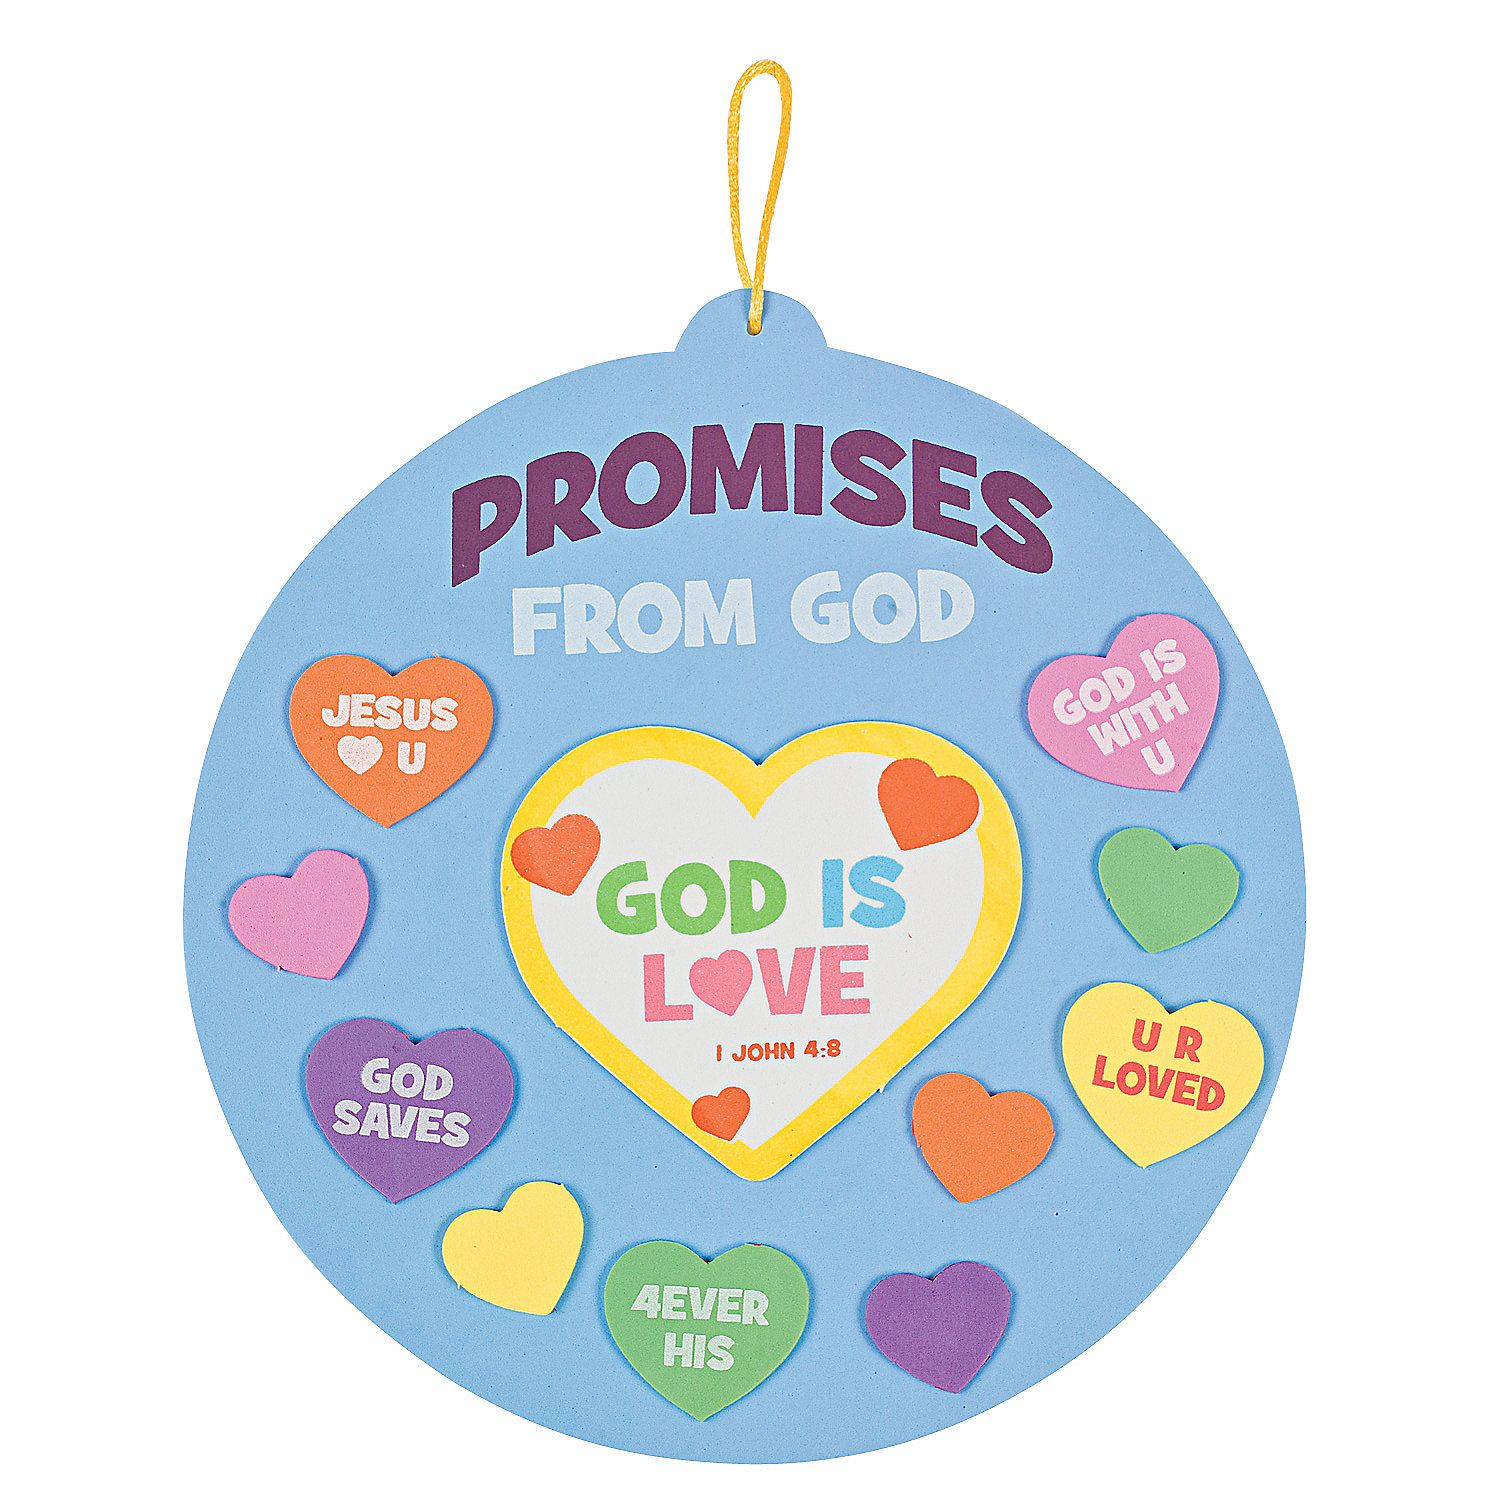 Oriental trading christian crafts -  Promises From God Sign Craft Kit Orientaltrading Com Day3 God Keeps